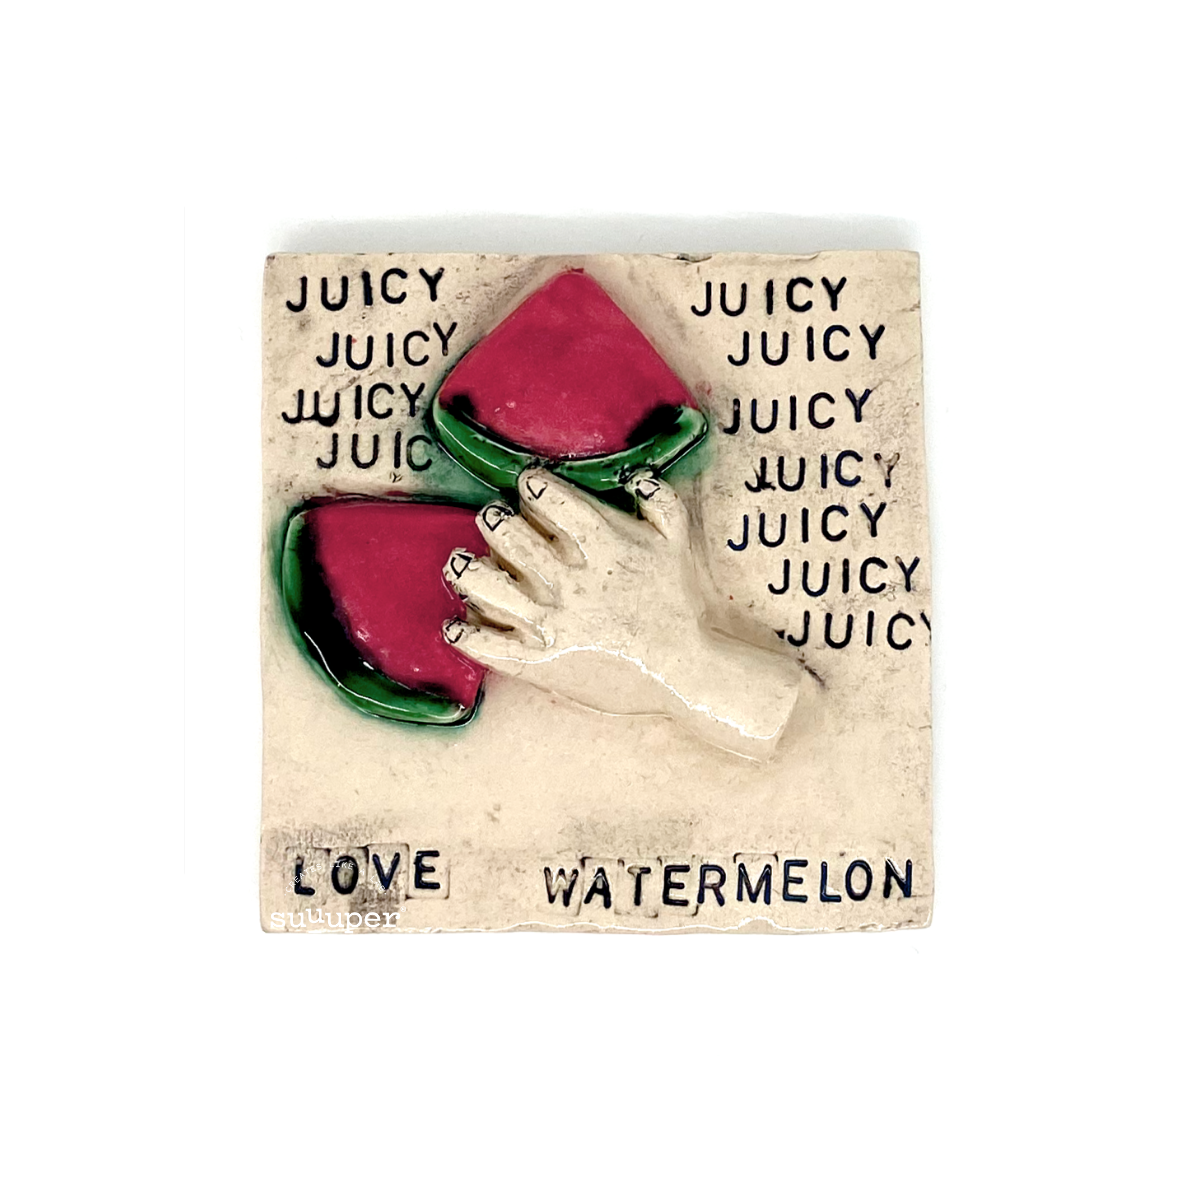 WATERMELON TILE by Sara F